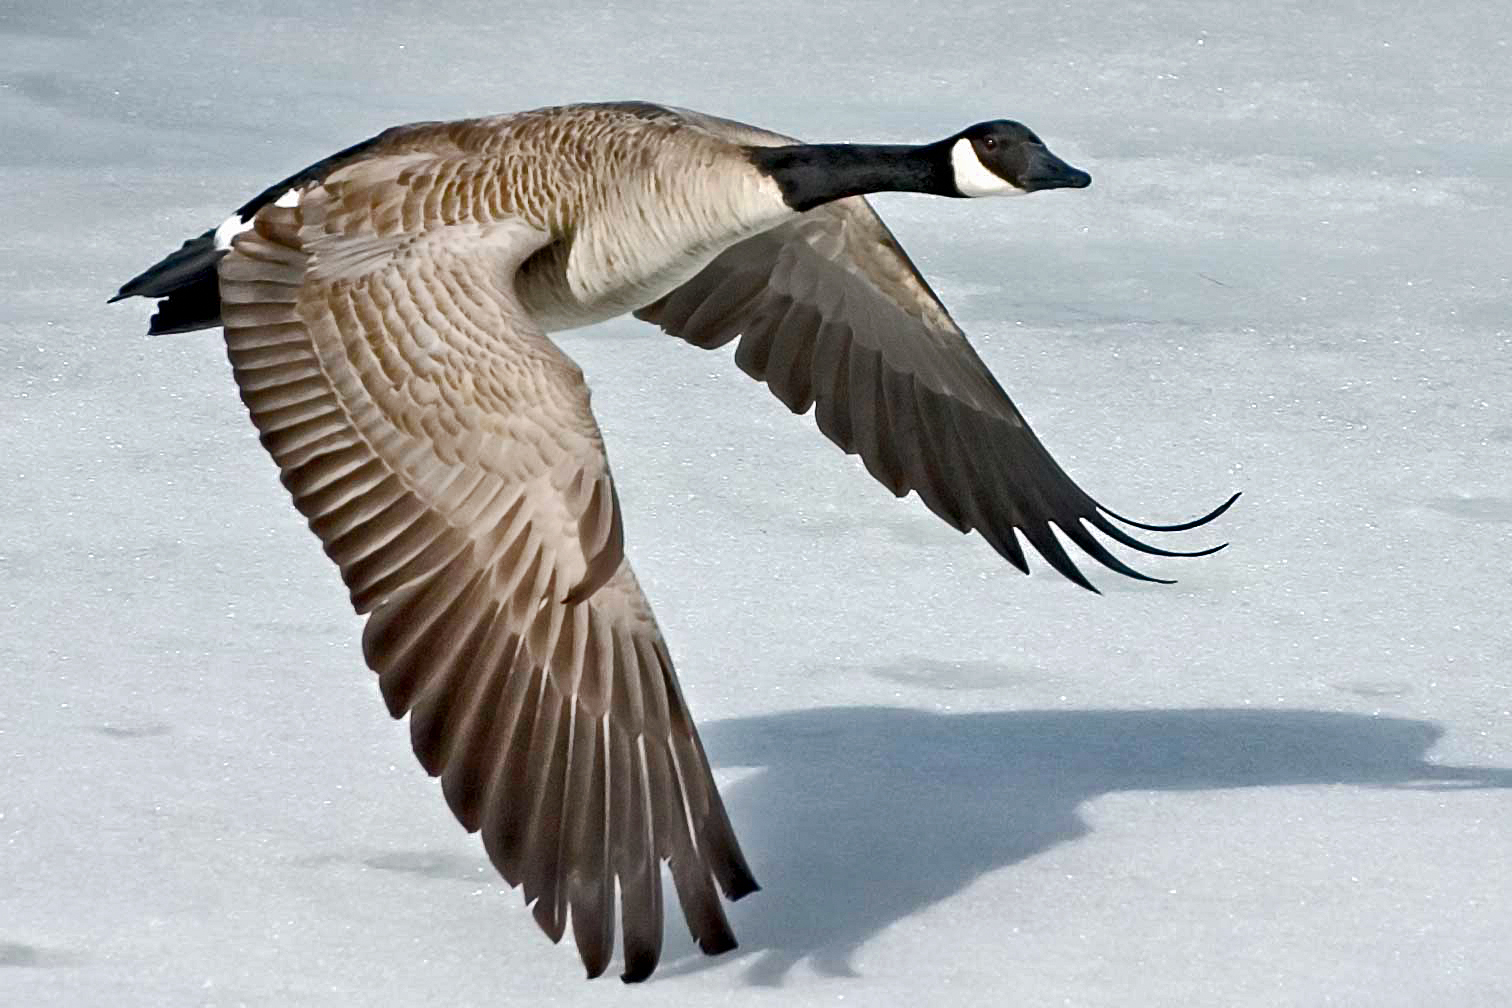 The RSPB Canada goose